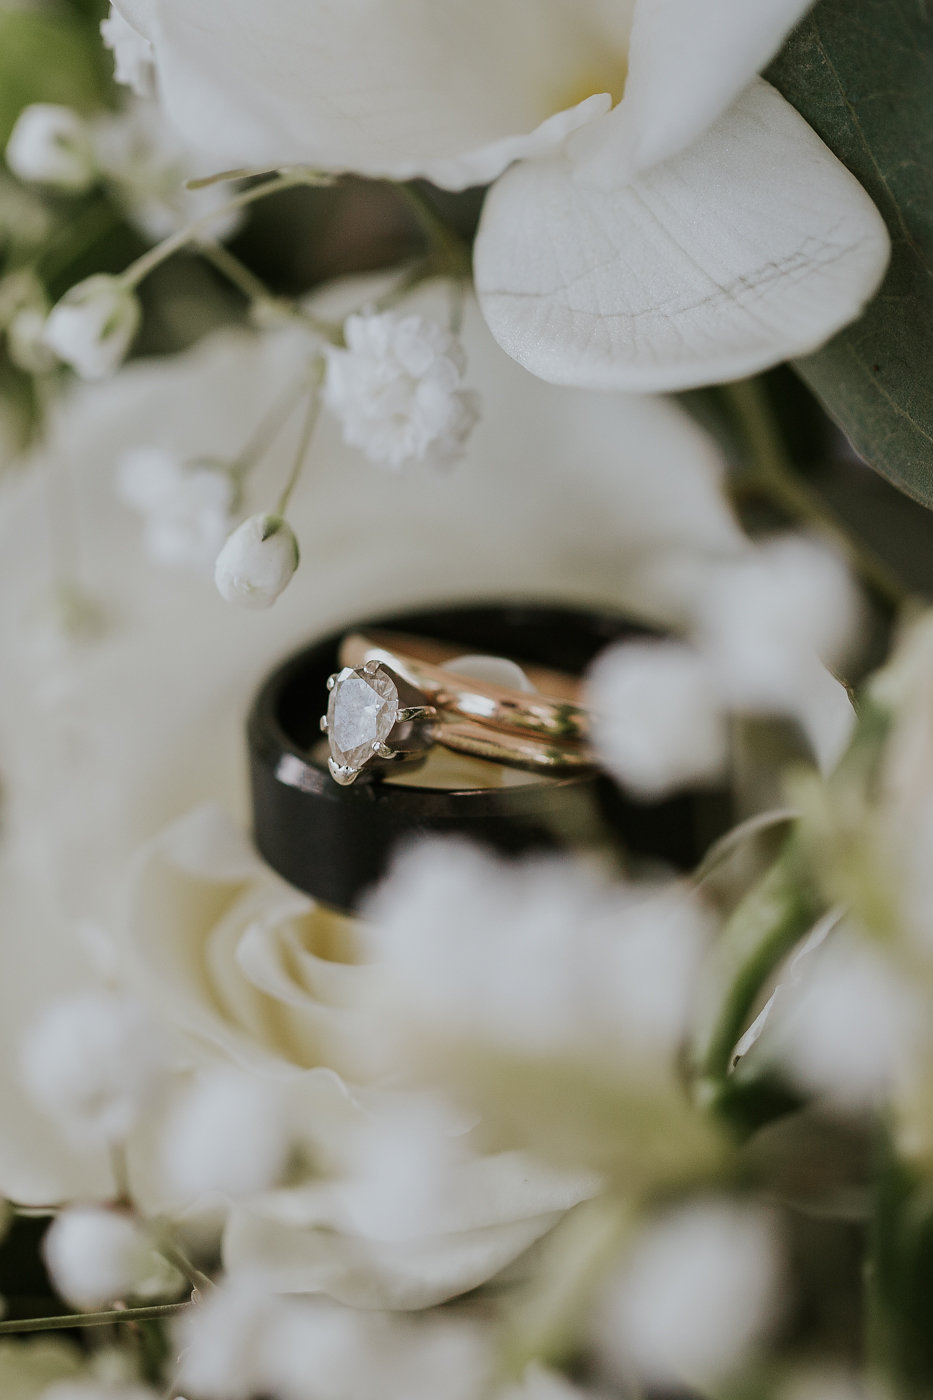 Gold Solitaire Wedding Ring - North Carolina Wedding Venue - Triple J Manor House Wedding